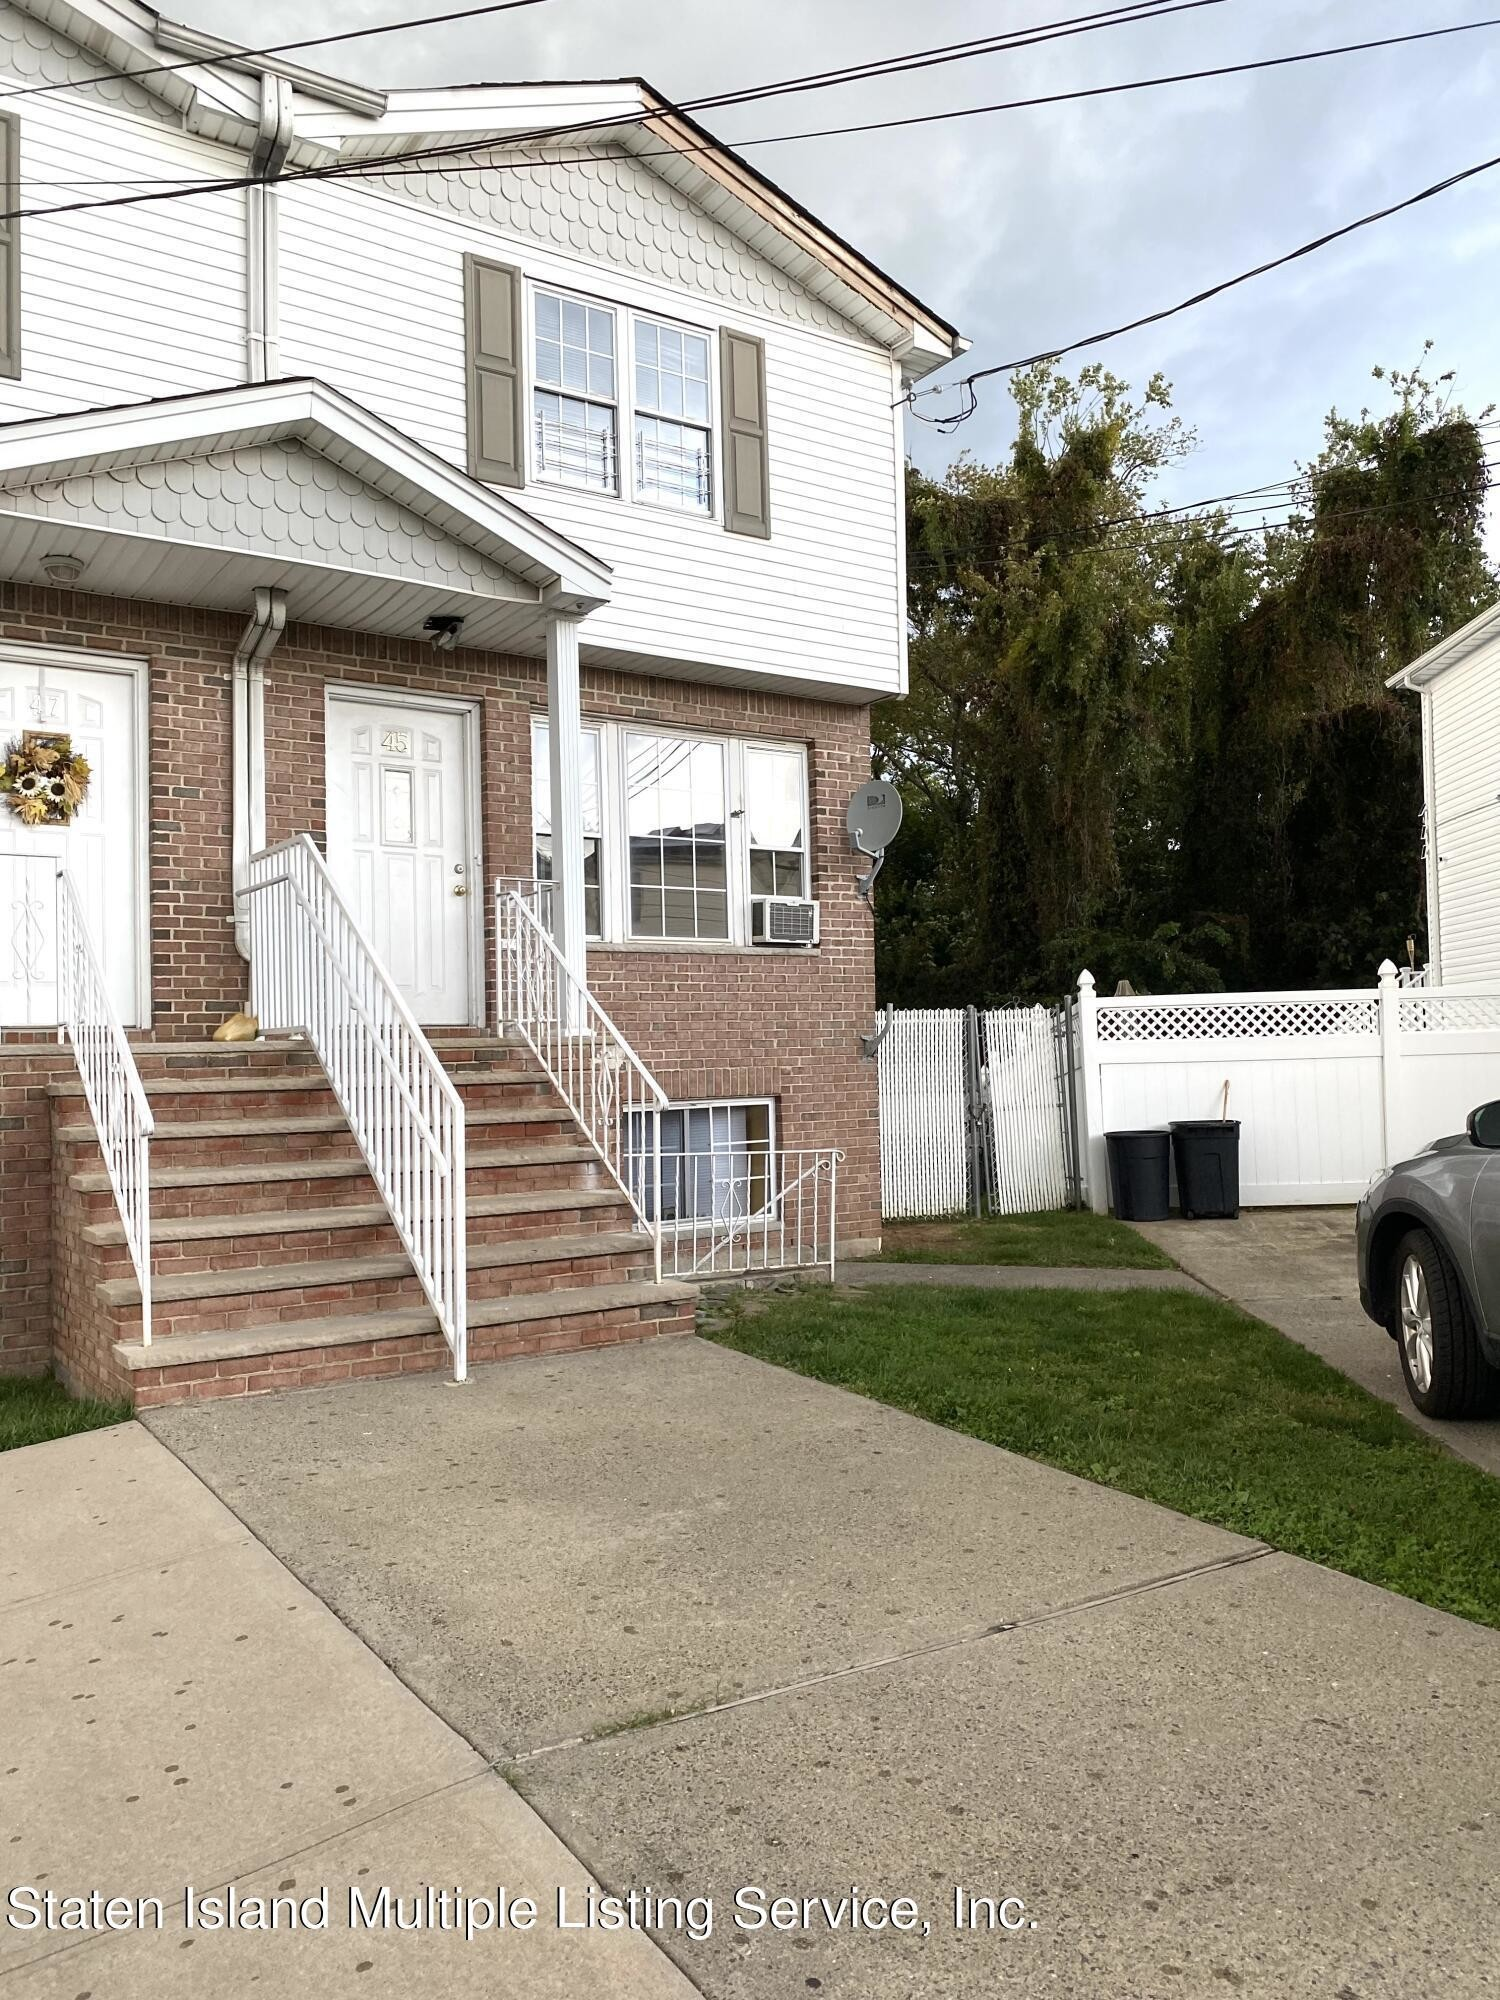 Multi-Family Home In Westerleigh